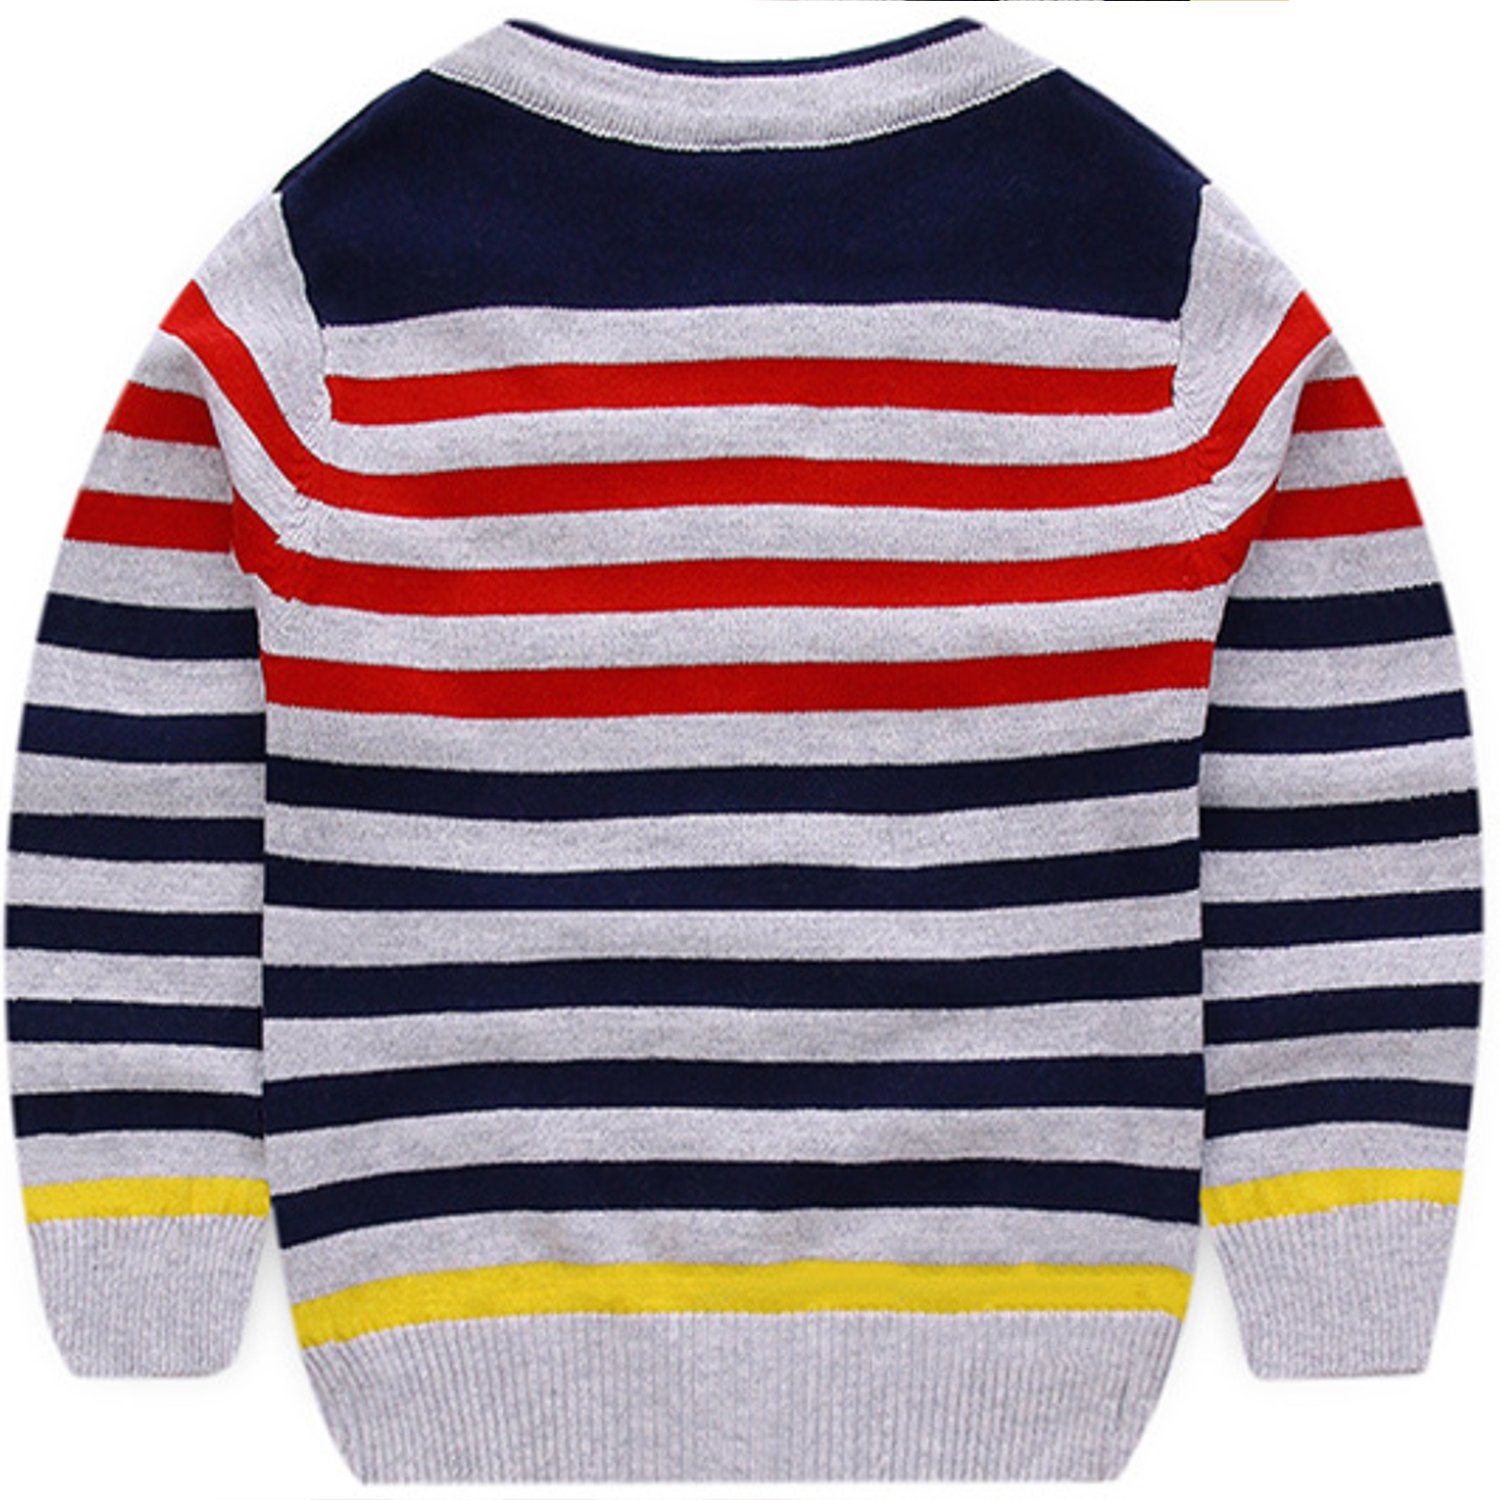 AUIE SAOSA The Little boy Striped Cotton Knitted Cardigan Sweater